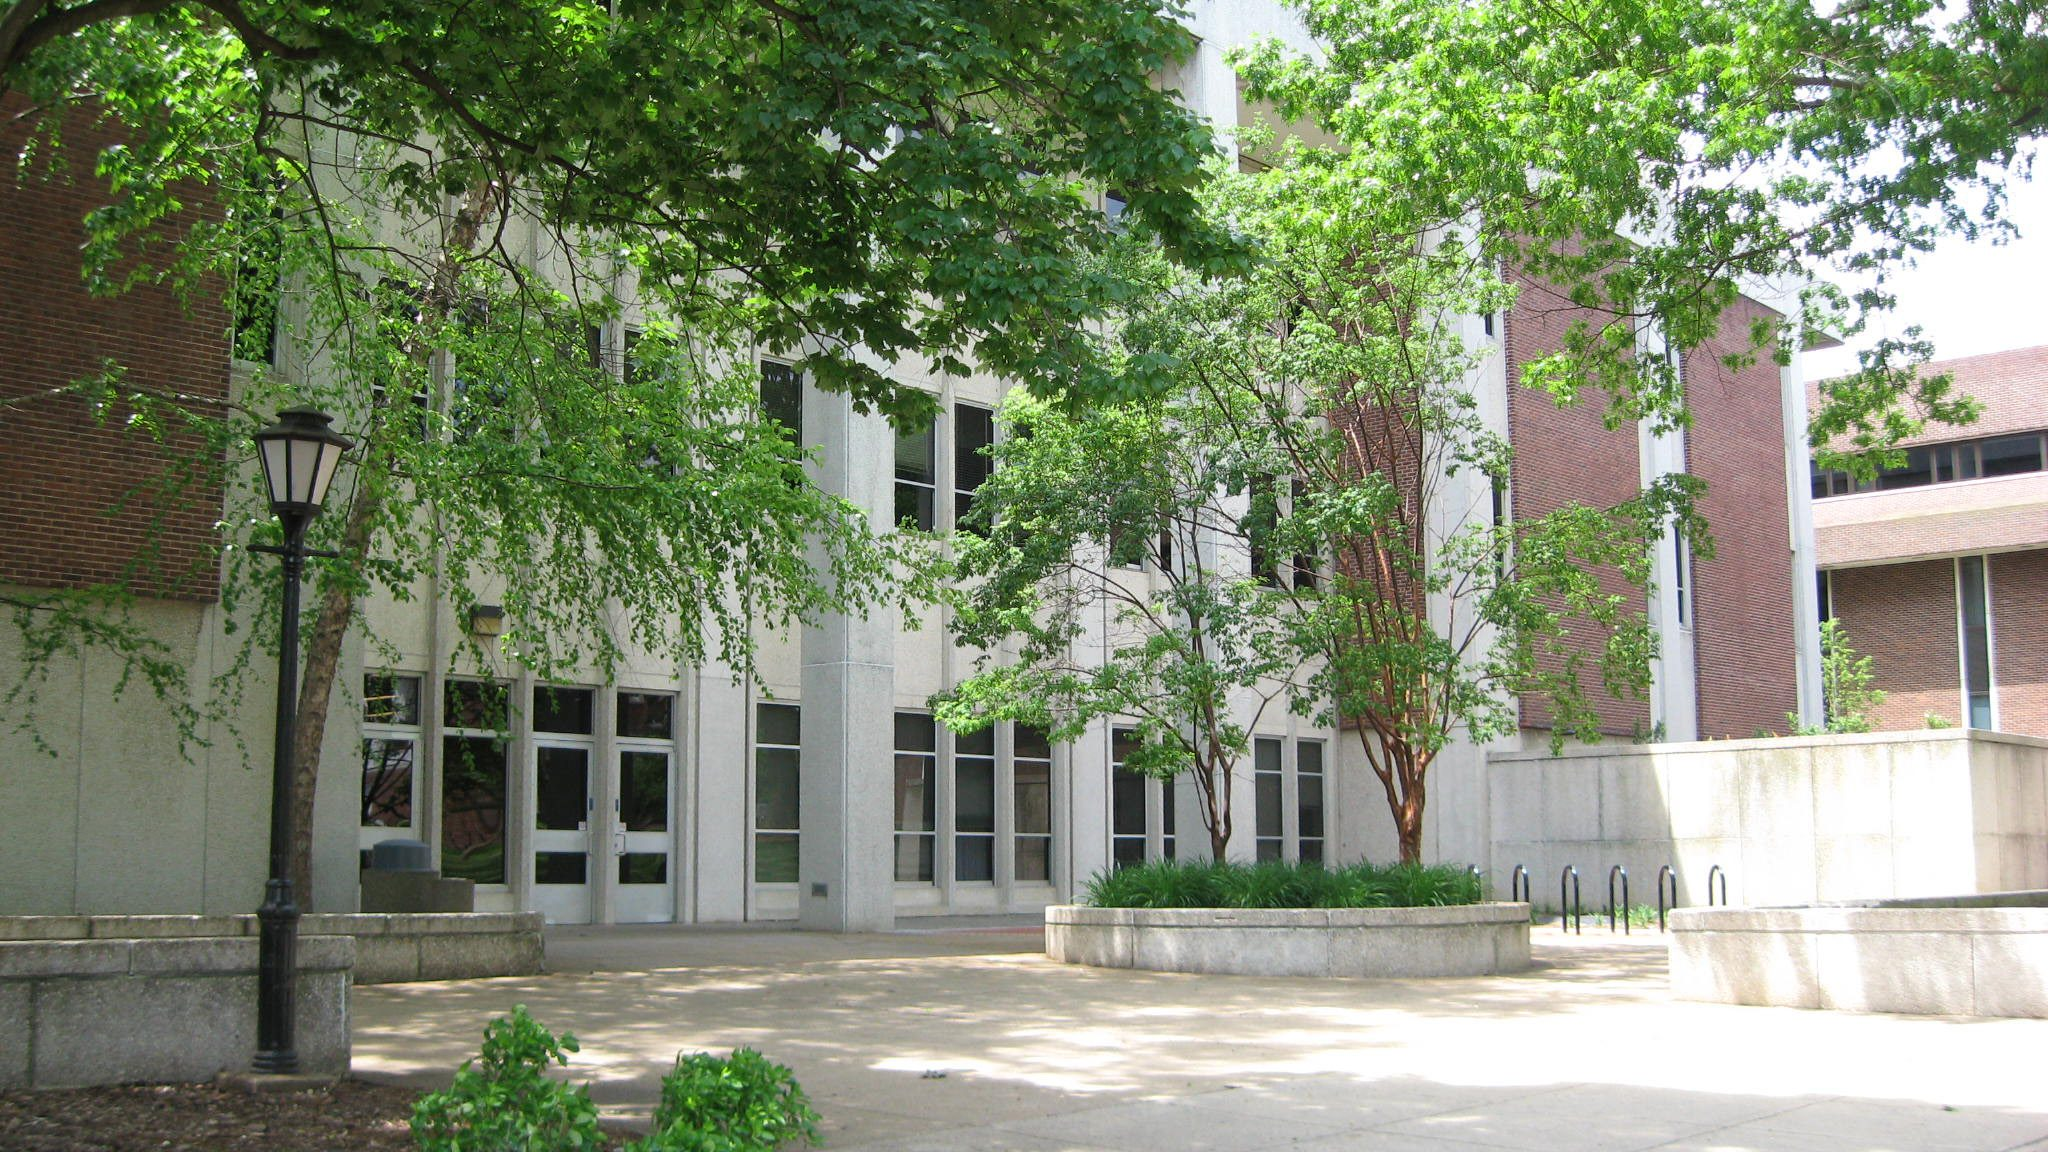 This image shows the main entrance of Willard Hall Education Building in the springtime.